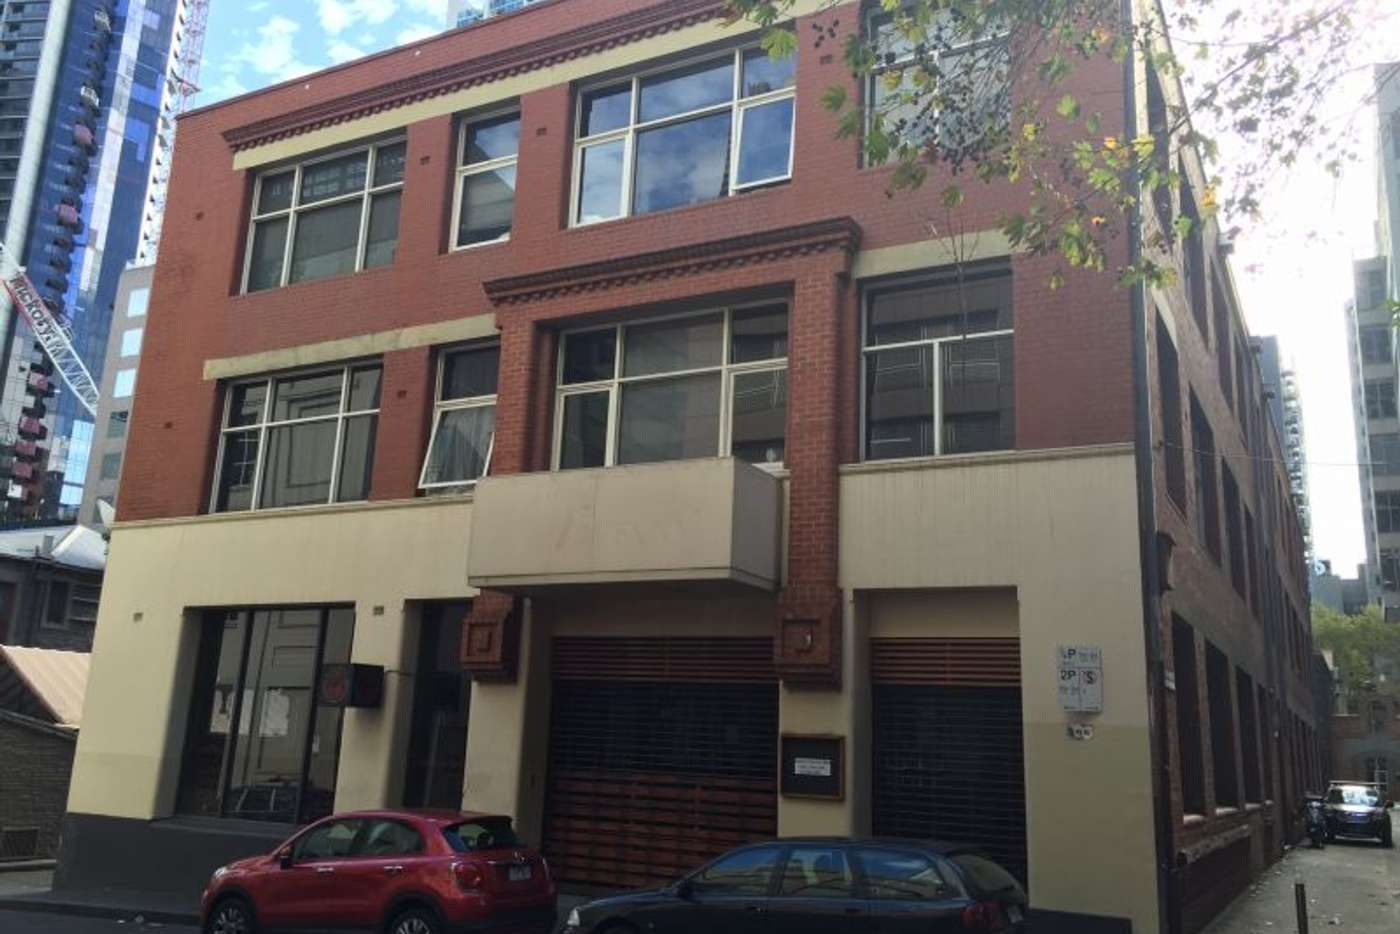 Main view of Homely apartment listing, 8/562 LT BOURKE STREET, Melbourne VIC 3000